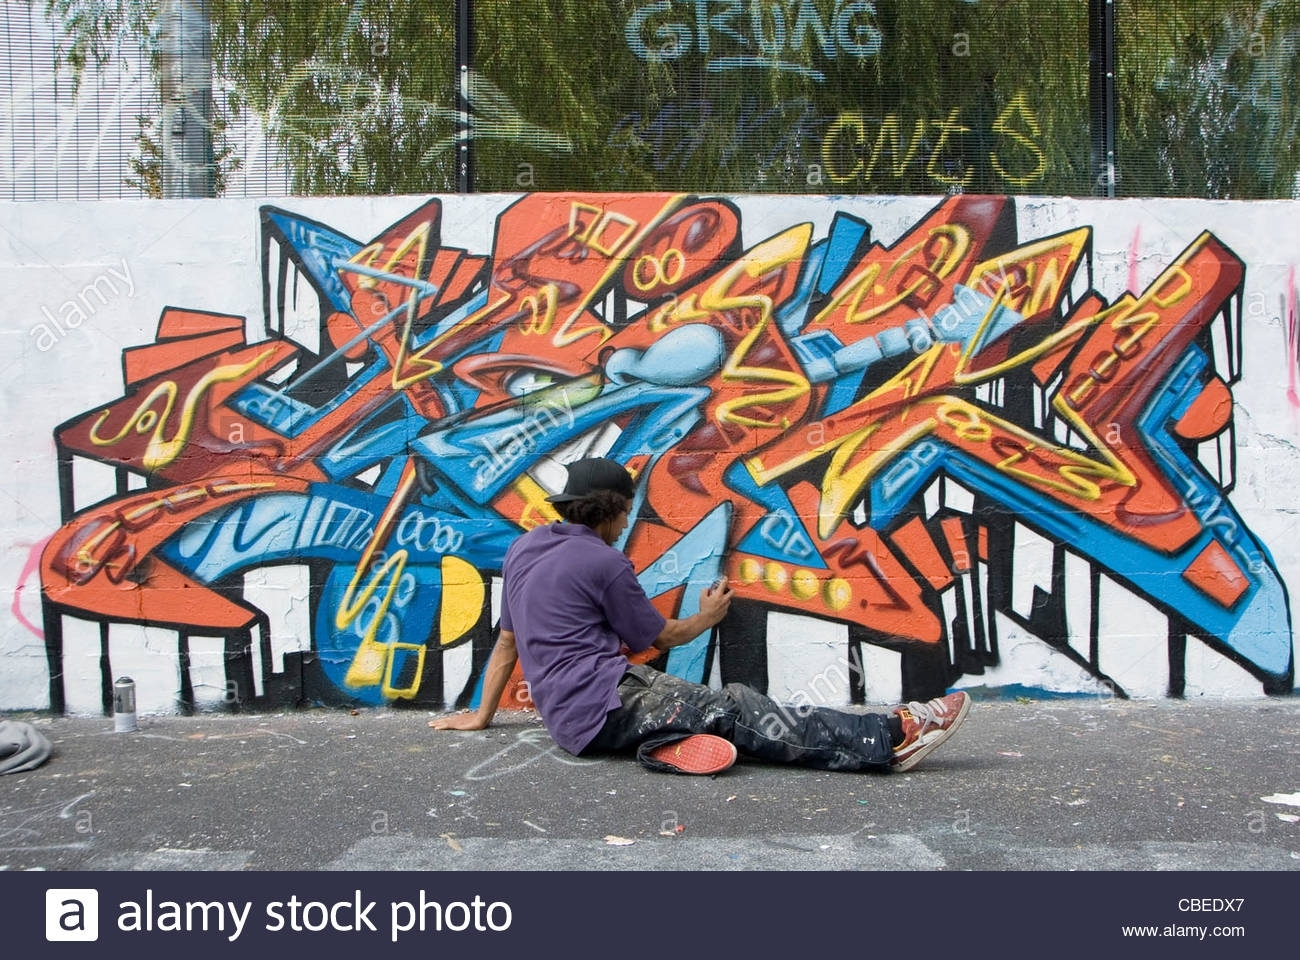 Teenage Boy Painting Abstract Graffiti Art Mural On Wall, From Intended For Latest Abstract Graffiti Wall Art (View 19 of 20)